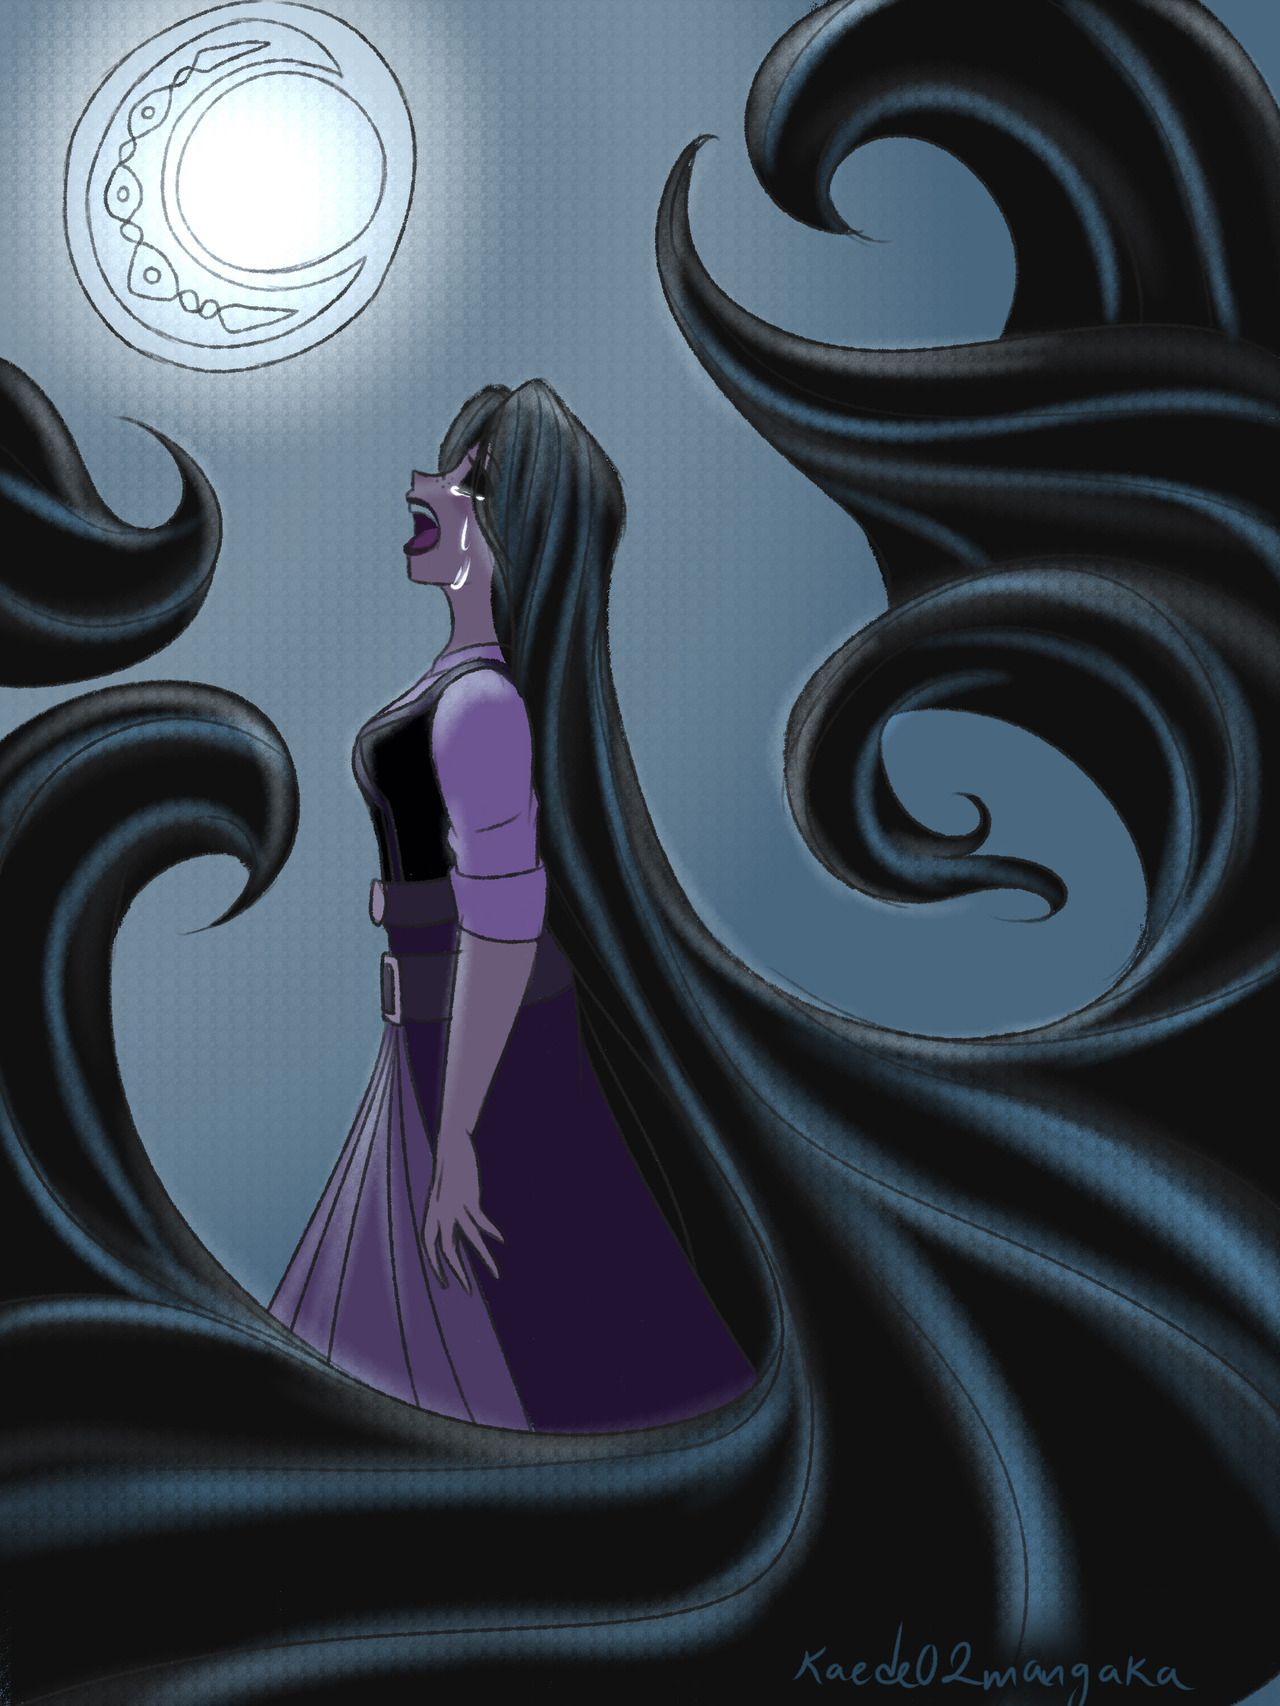 Moon Rapunzel I Can T Believe This I Hope His Black Hair With A Blue Streak Means Something The Song Was Absolutely Good And Disney Art Disney Fan Art Disney